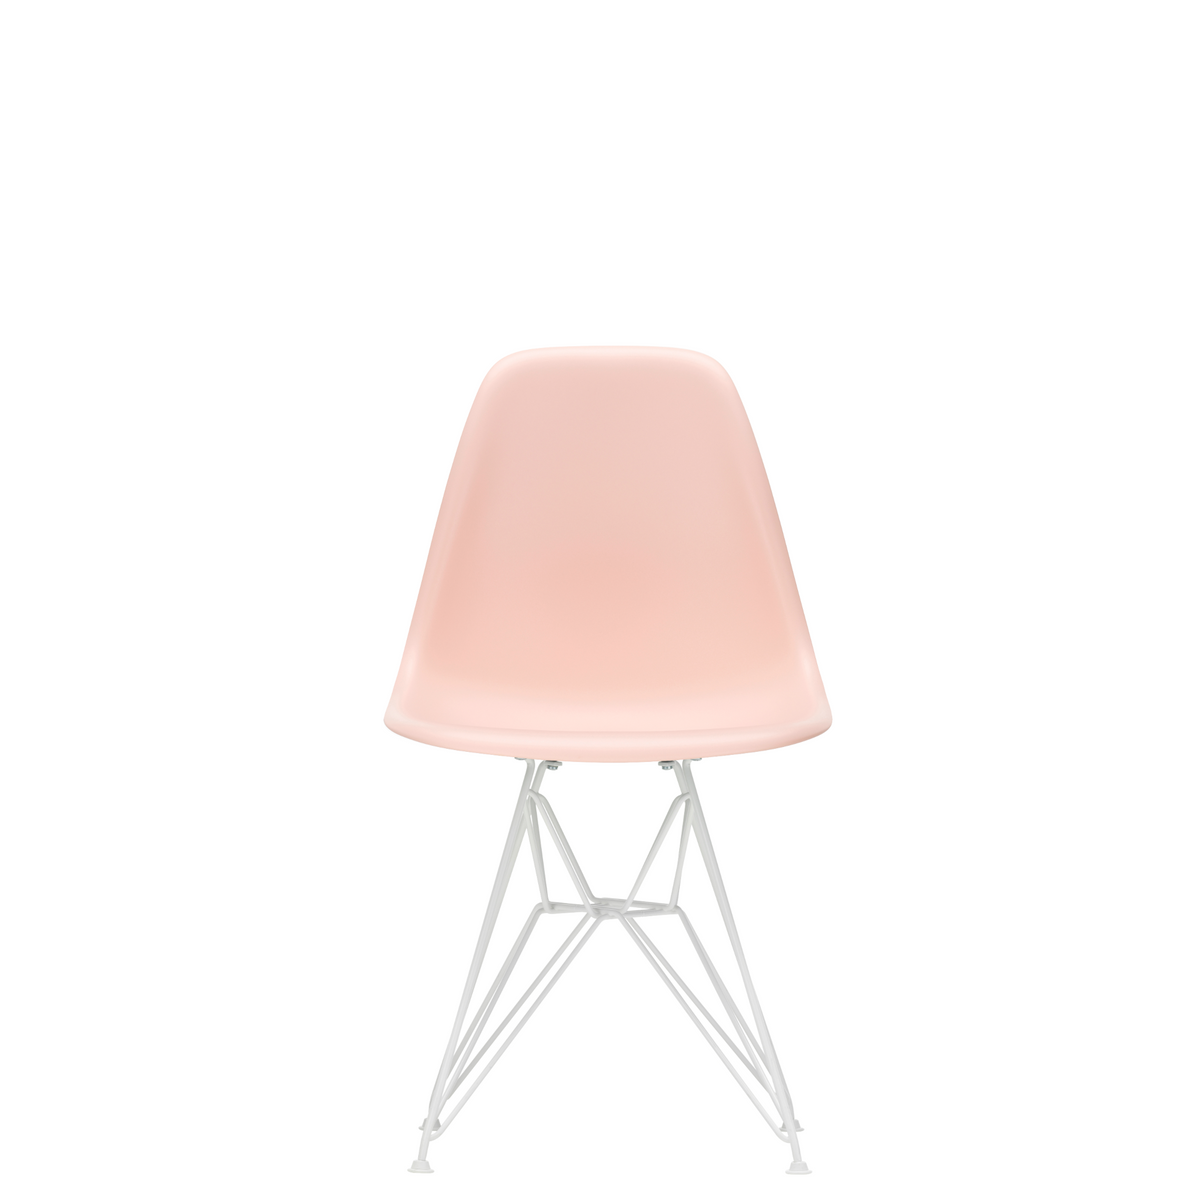 Vitra Eames Plastic Side Chair DSR Powder Coated for Outdoor Use. Pale Rose Shell, White Powdercoated Base